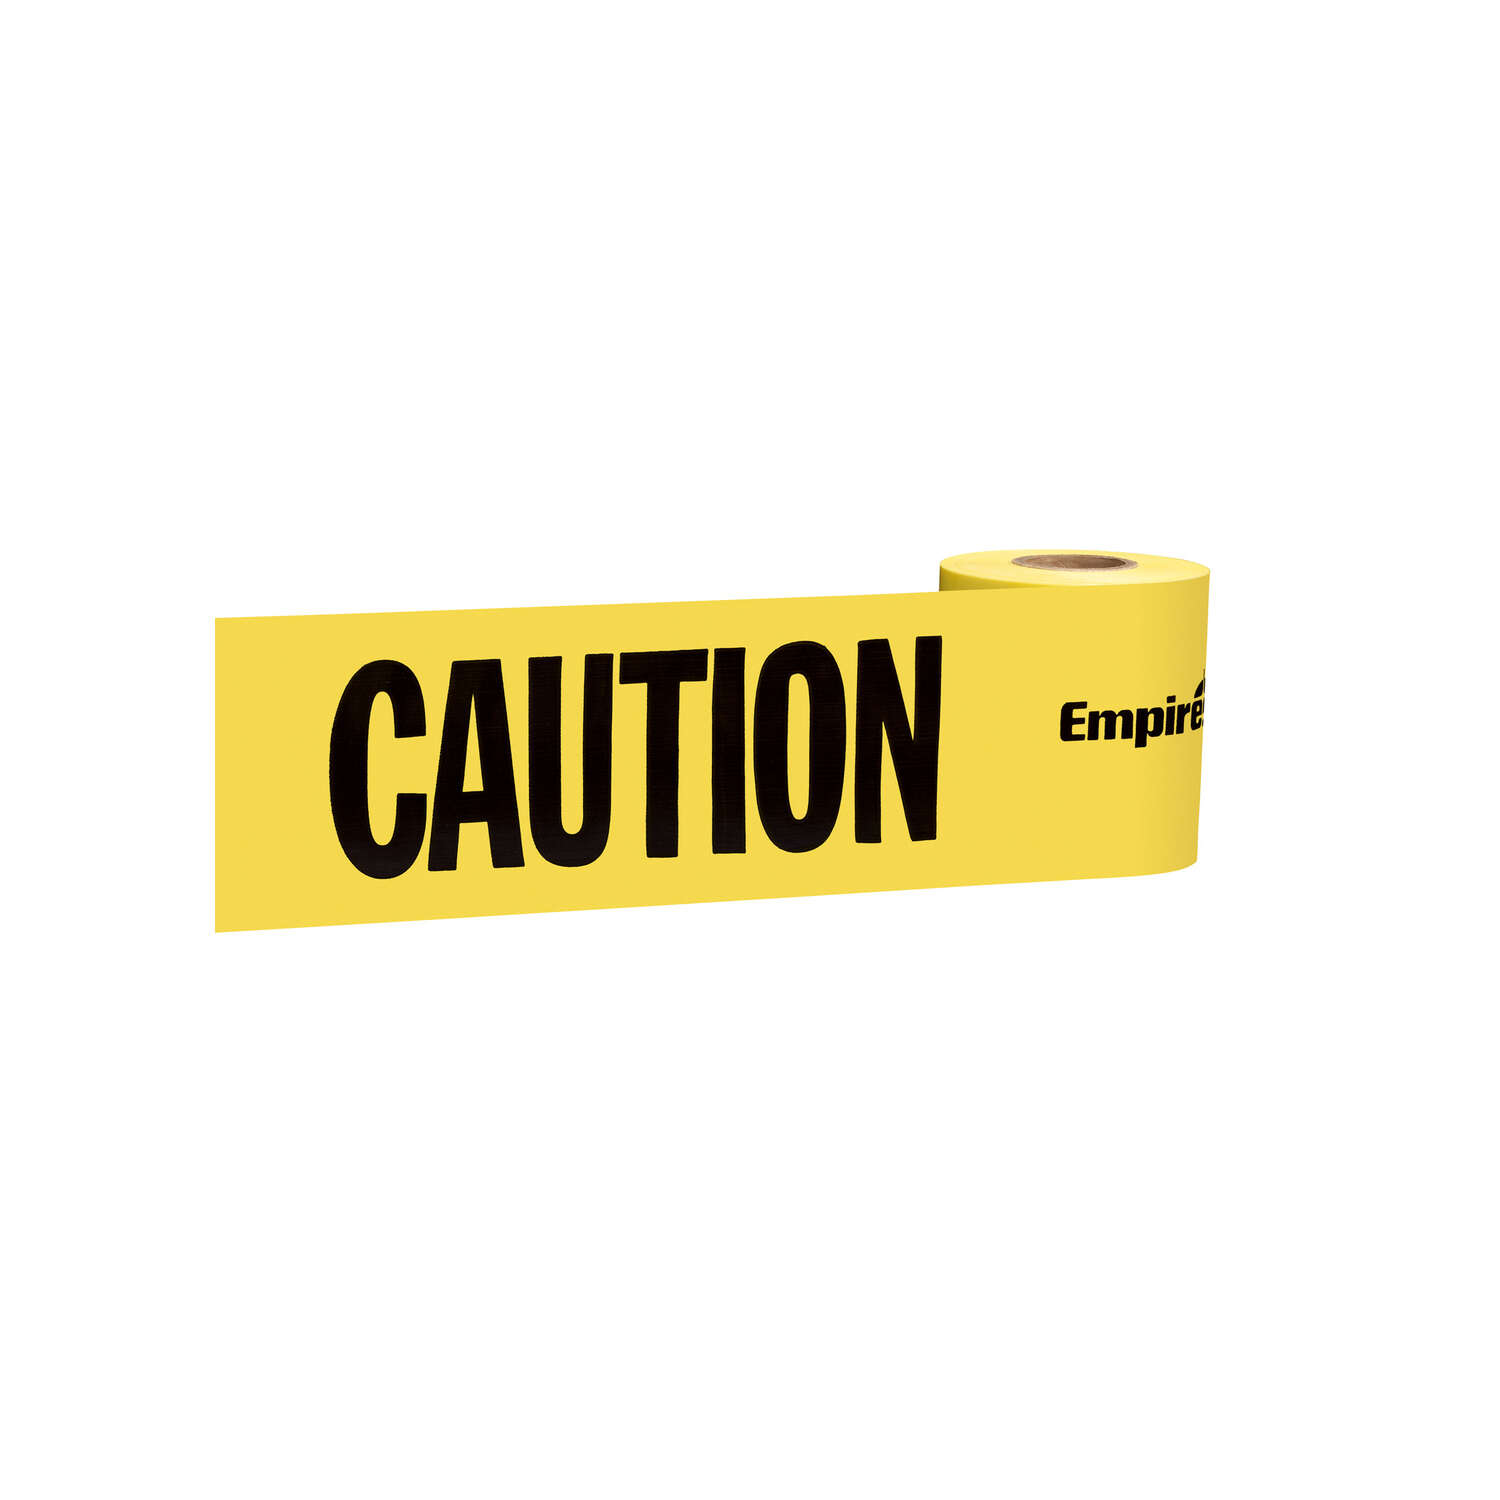 Empire 200 ft. L x 3 in. W Plastic Caution Cuidado Bilingual Barricade Tape Yellow